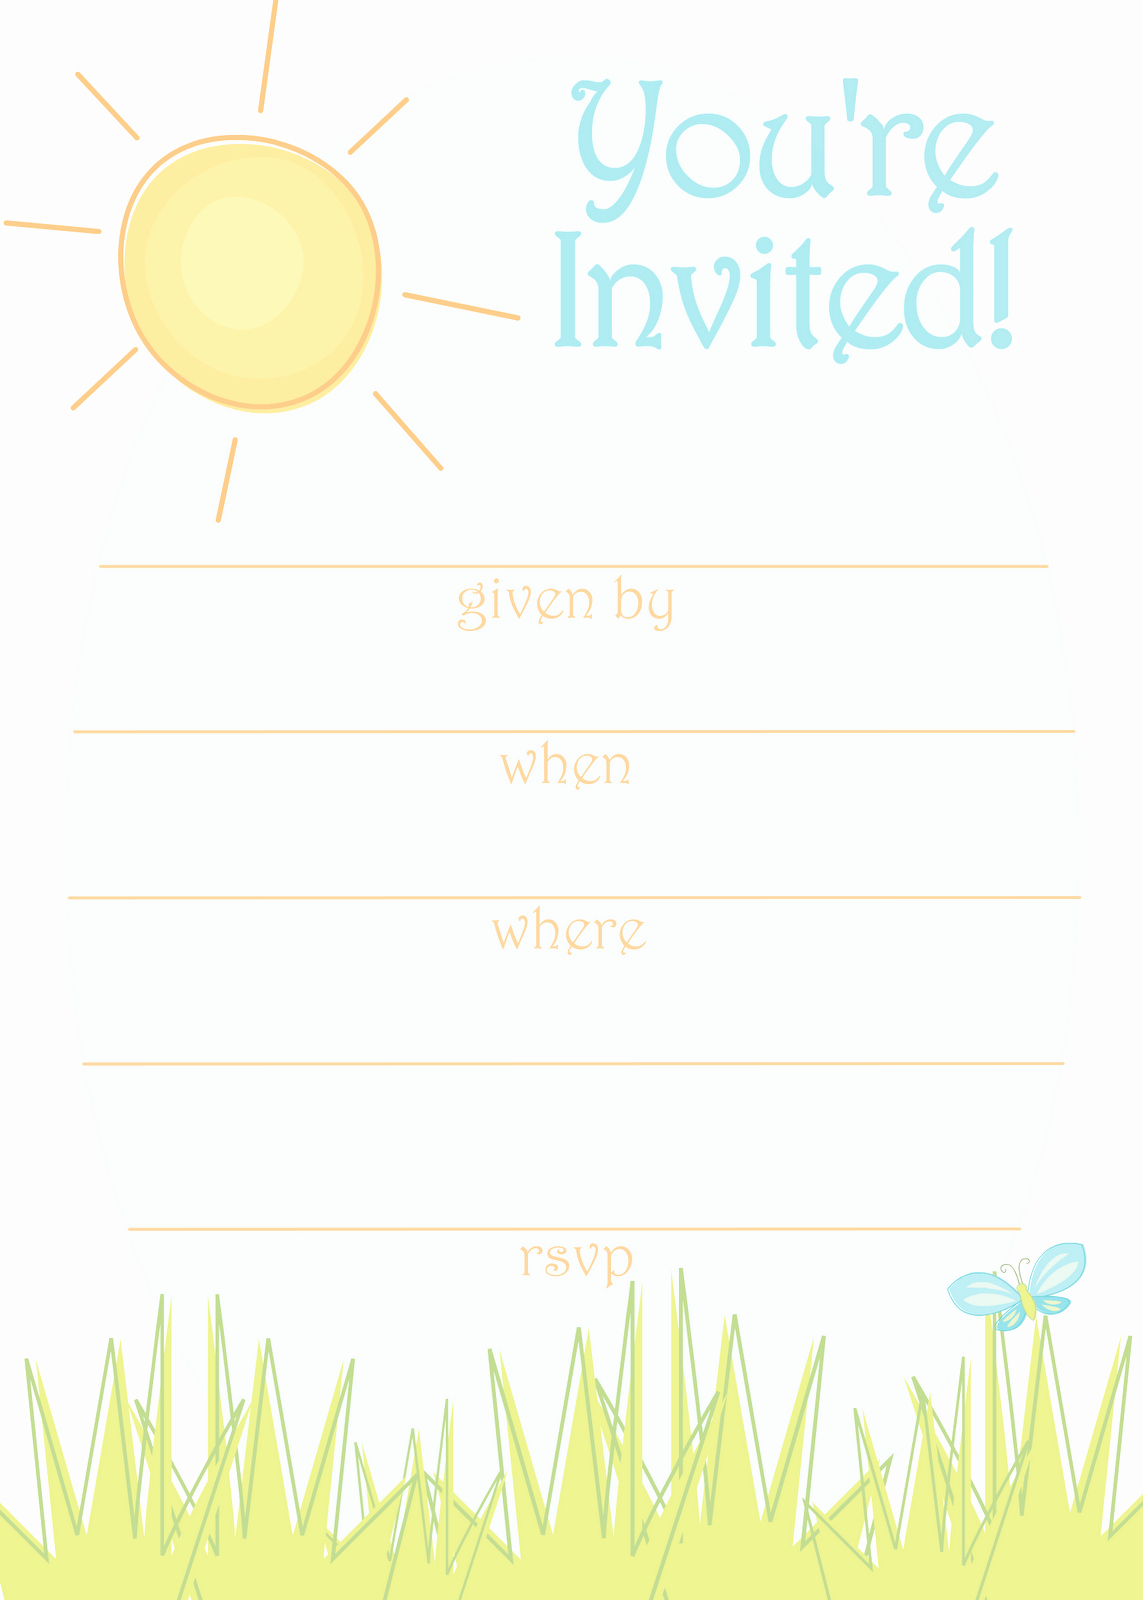 Summer Party Invitation Template New Free Printable Party Invitations Sunny Day Invitation for